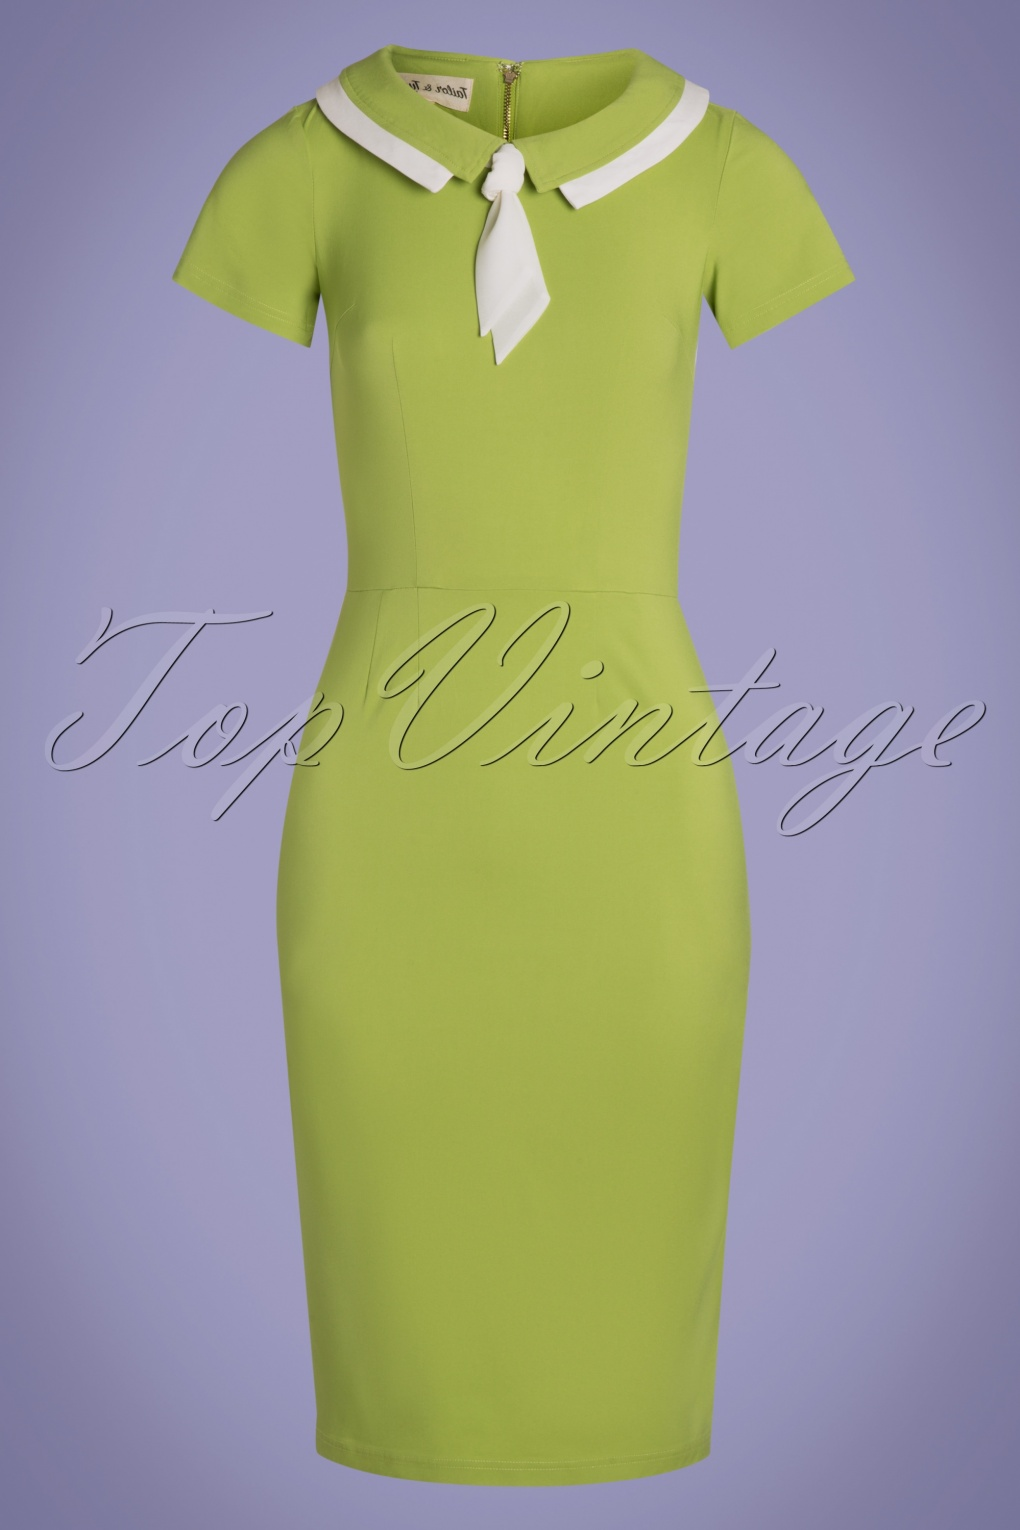 50 Vintage Inspired Clothing Stores 50s Catherine Pencil Dress in Lime £129.46 AT vintagedancer.com